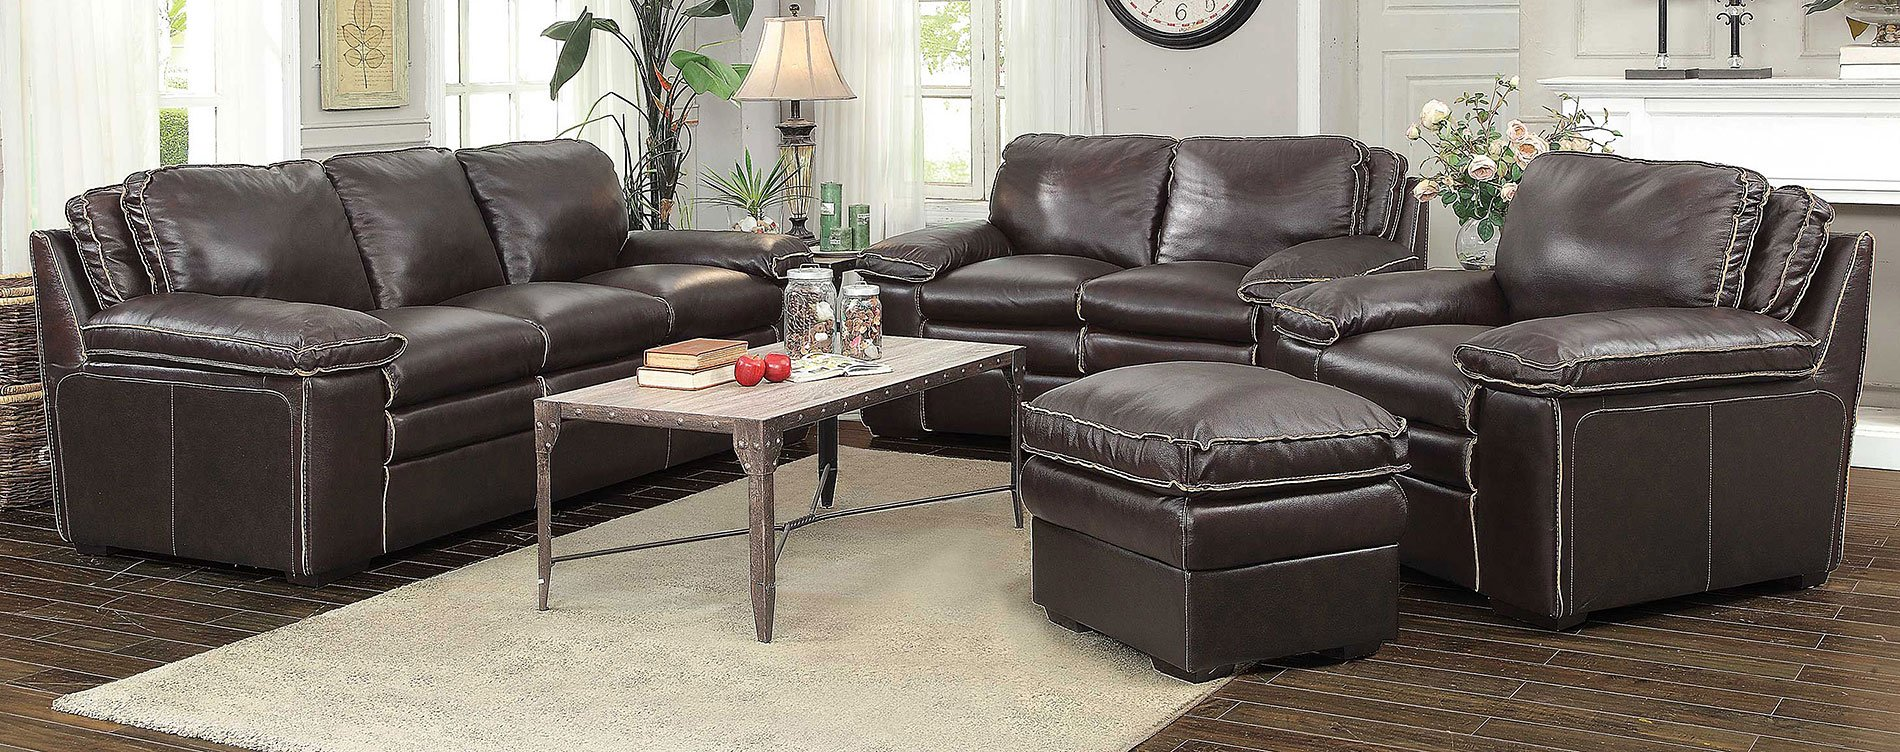 Regalvale Living Room Set Brown Living Room Sets